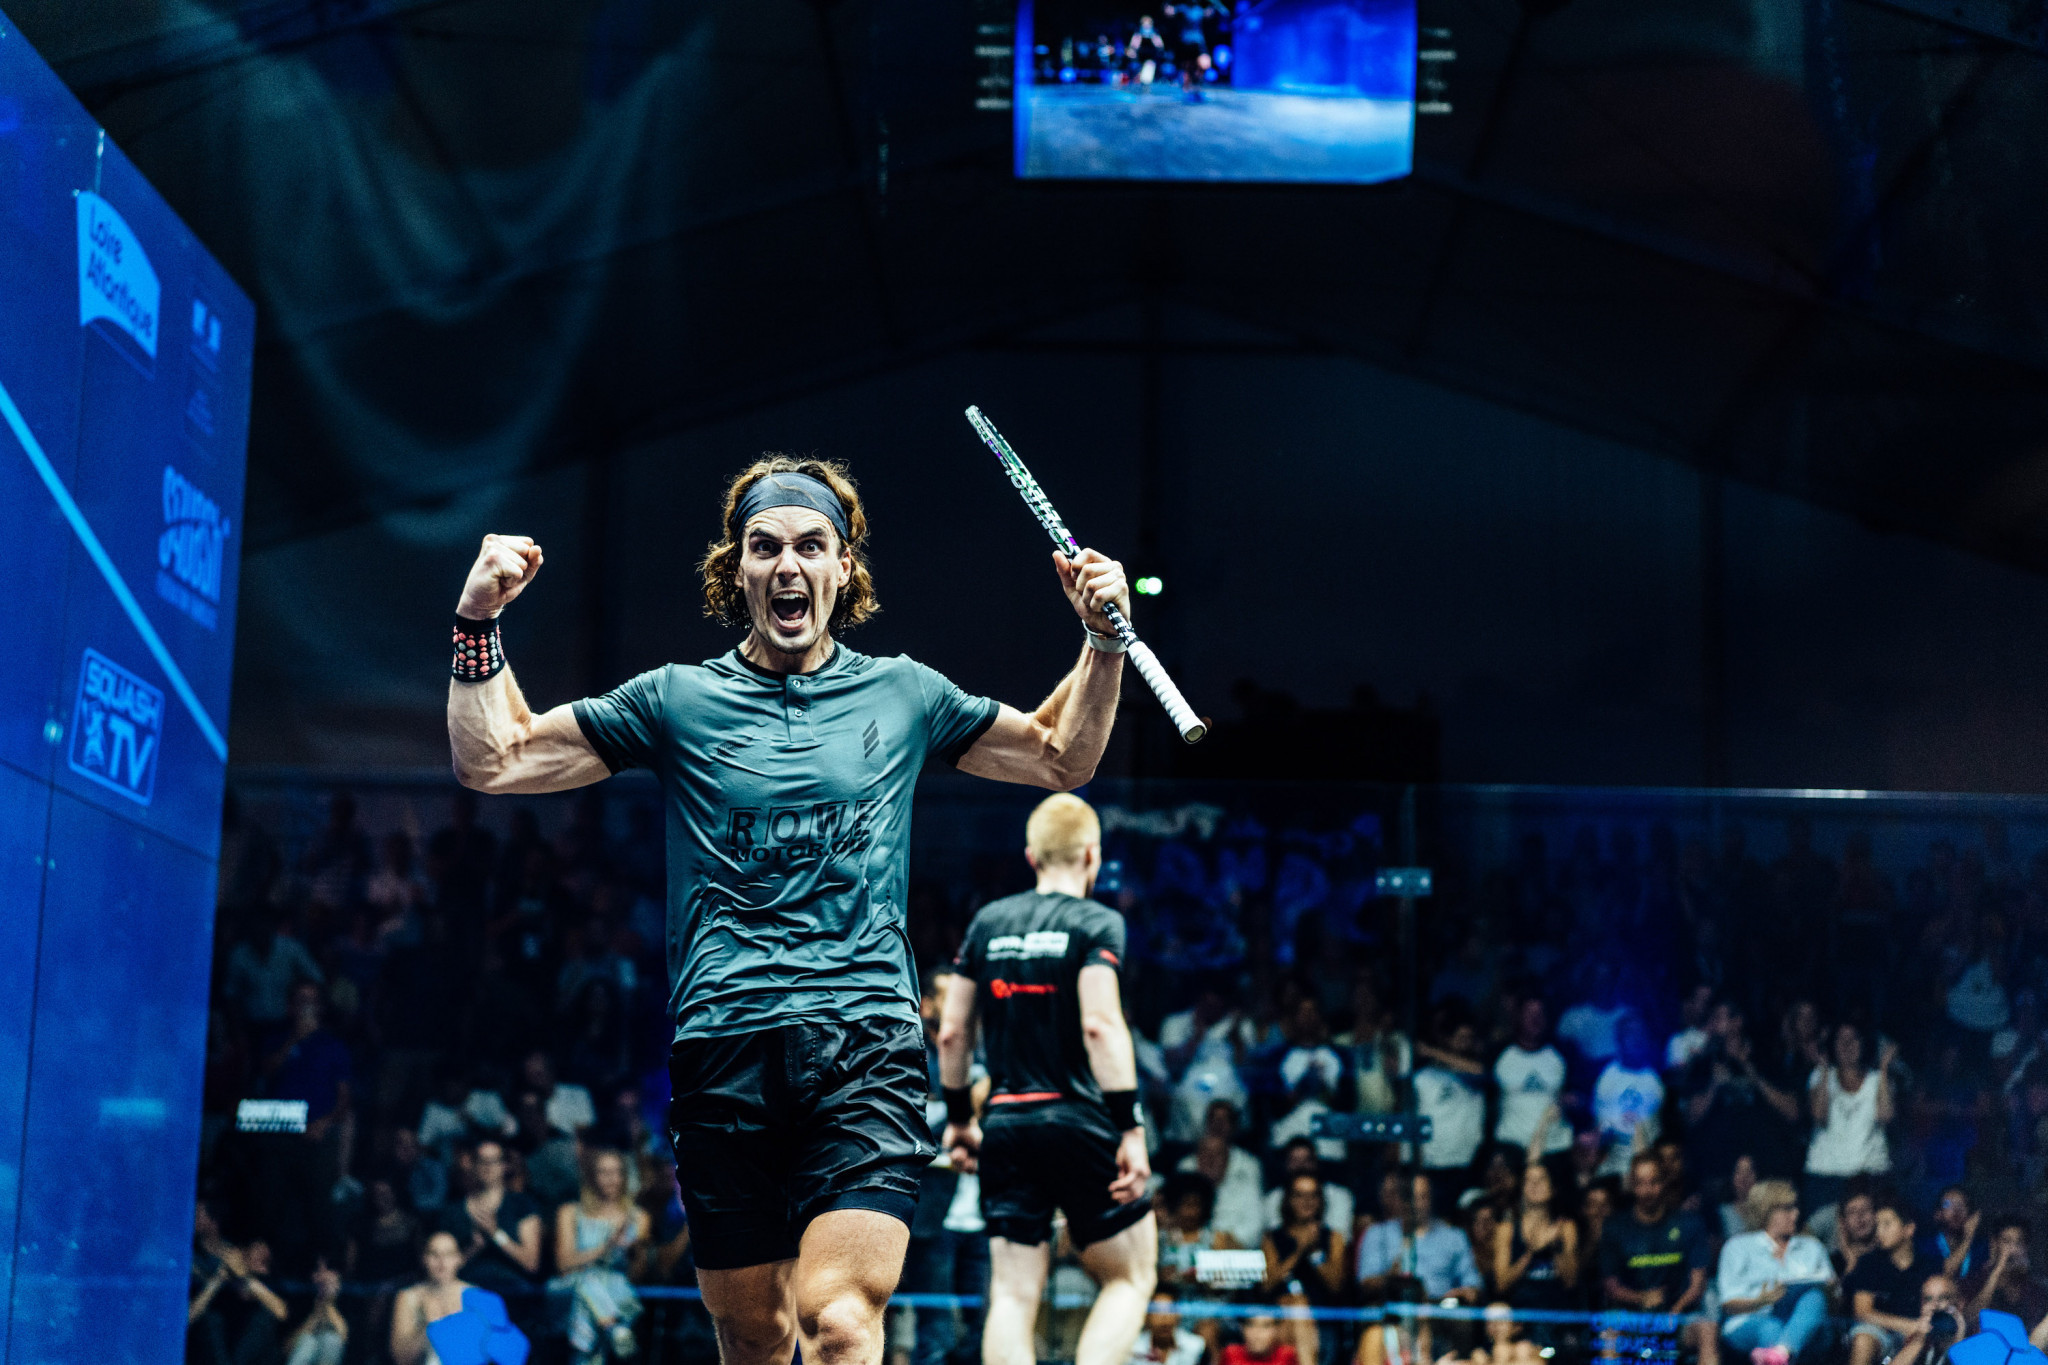 Coll up to fifth as Egyptians dominate PSA October world rankings